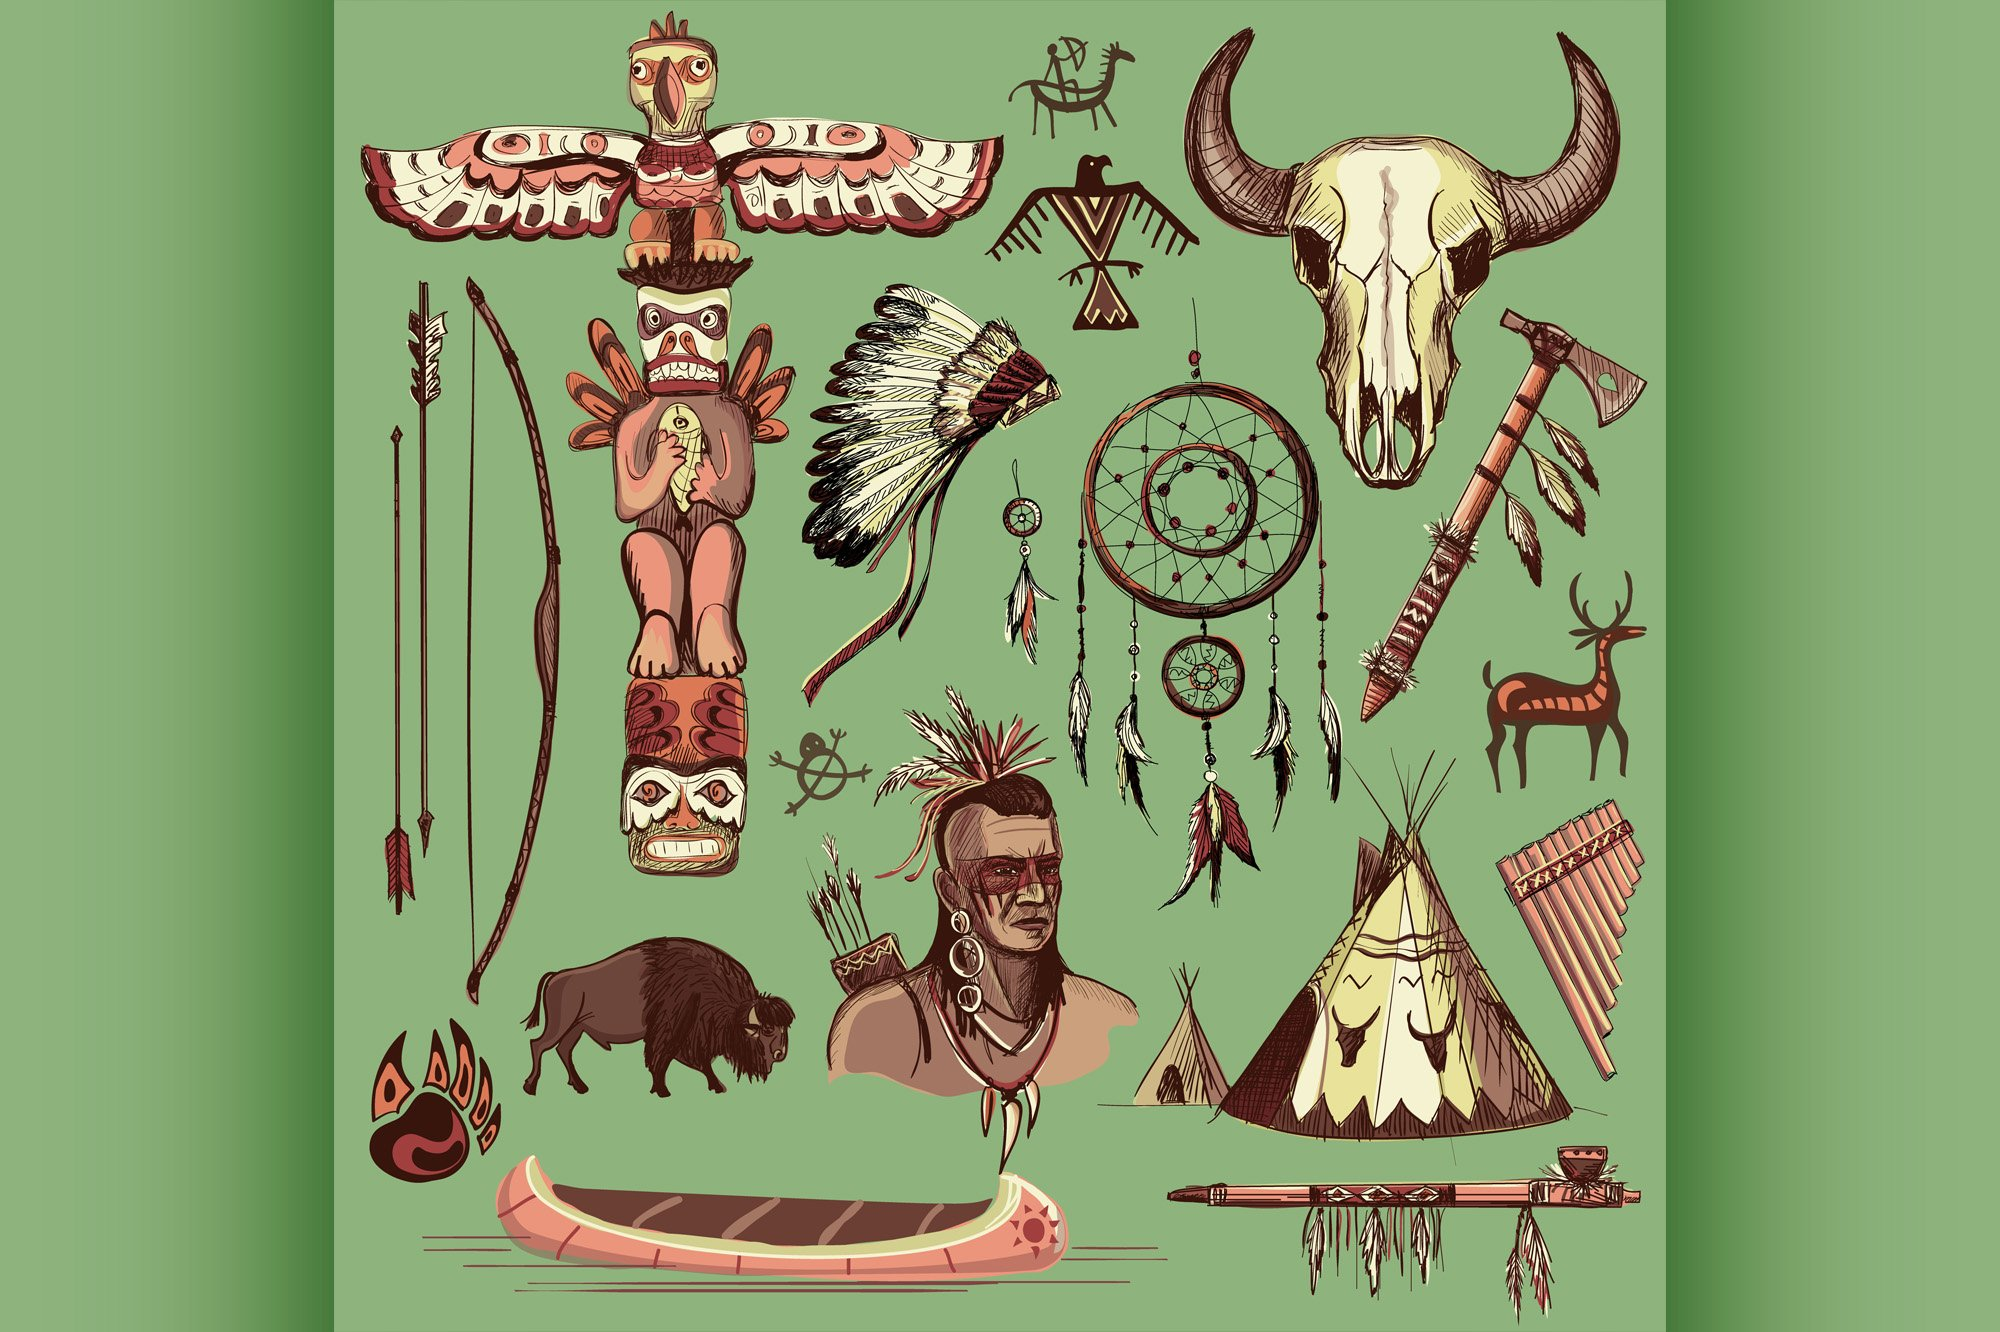 Collection of hand drawn wild west american indian icons example image 1